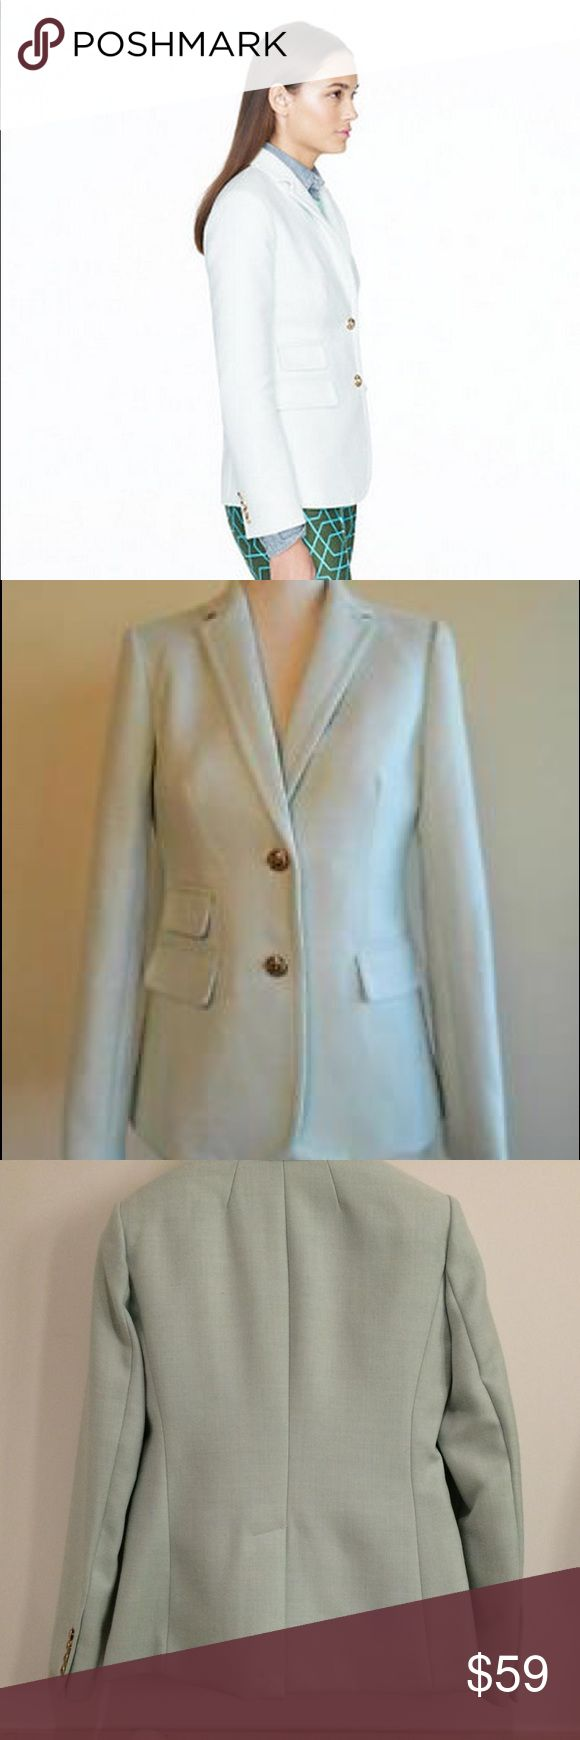 J. Crew Blazer Wool mint green blazer. Lovey spring color. Small. No flaws. Excellent condition! J. Crew Jackets & Coats Blazers